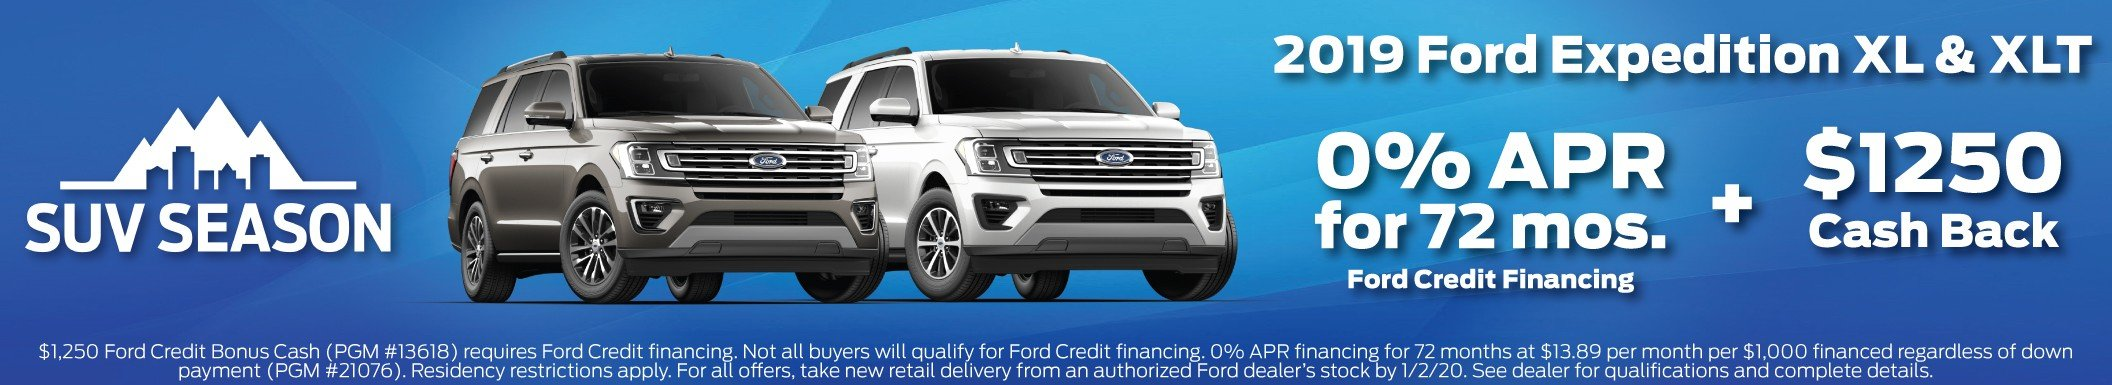 2019 Expedition Incentive 10-31-2019